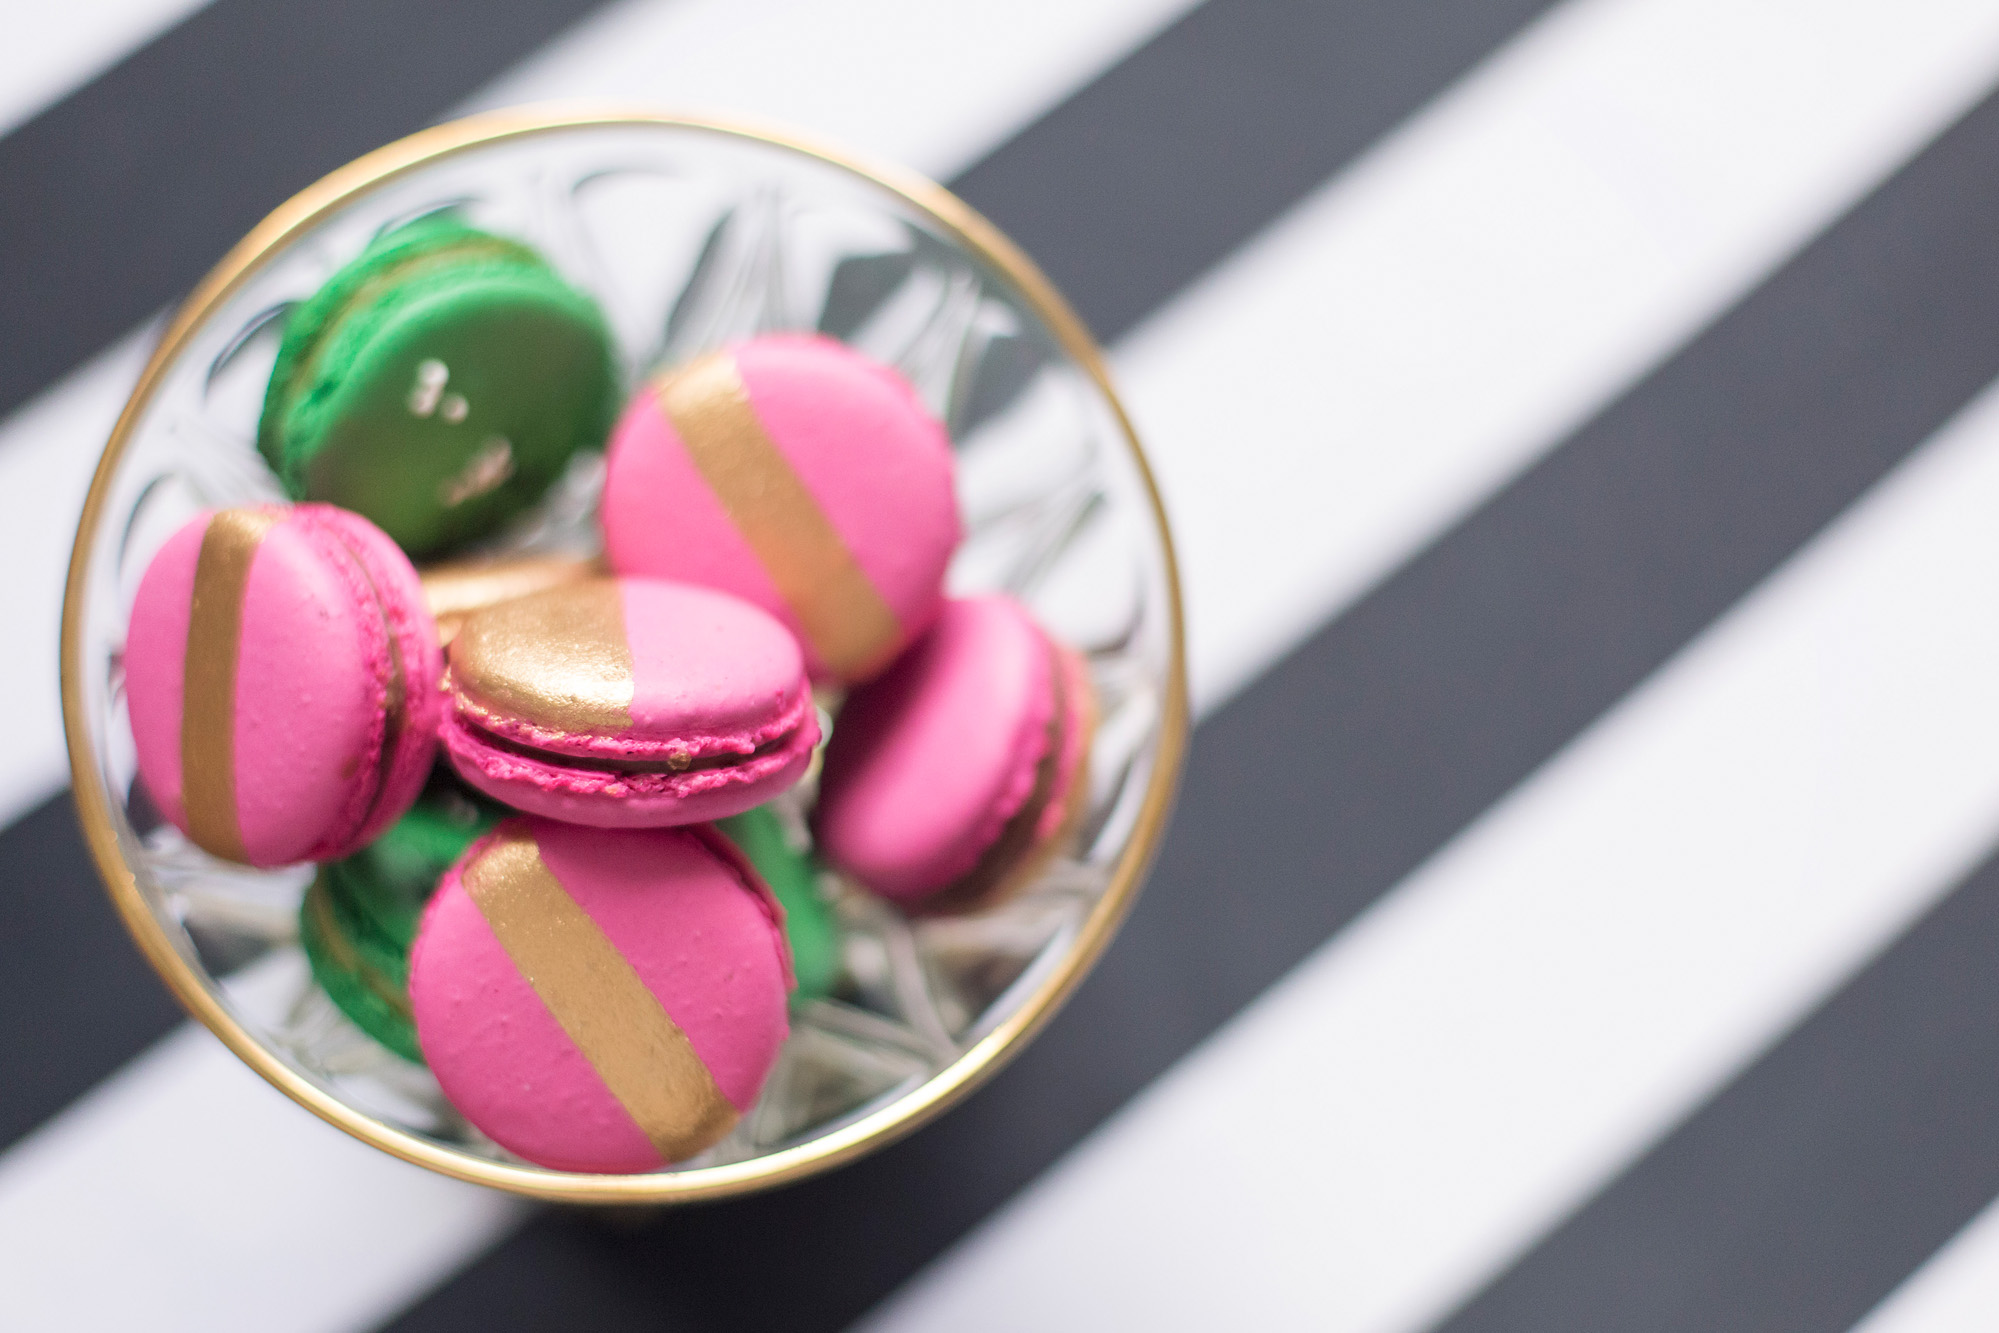 August In Bloom - Macarons - Kate Spade inspired black, white, with a pop of hot pink party